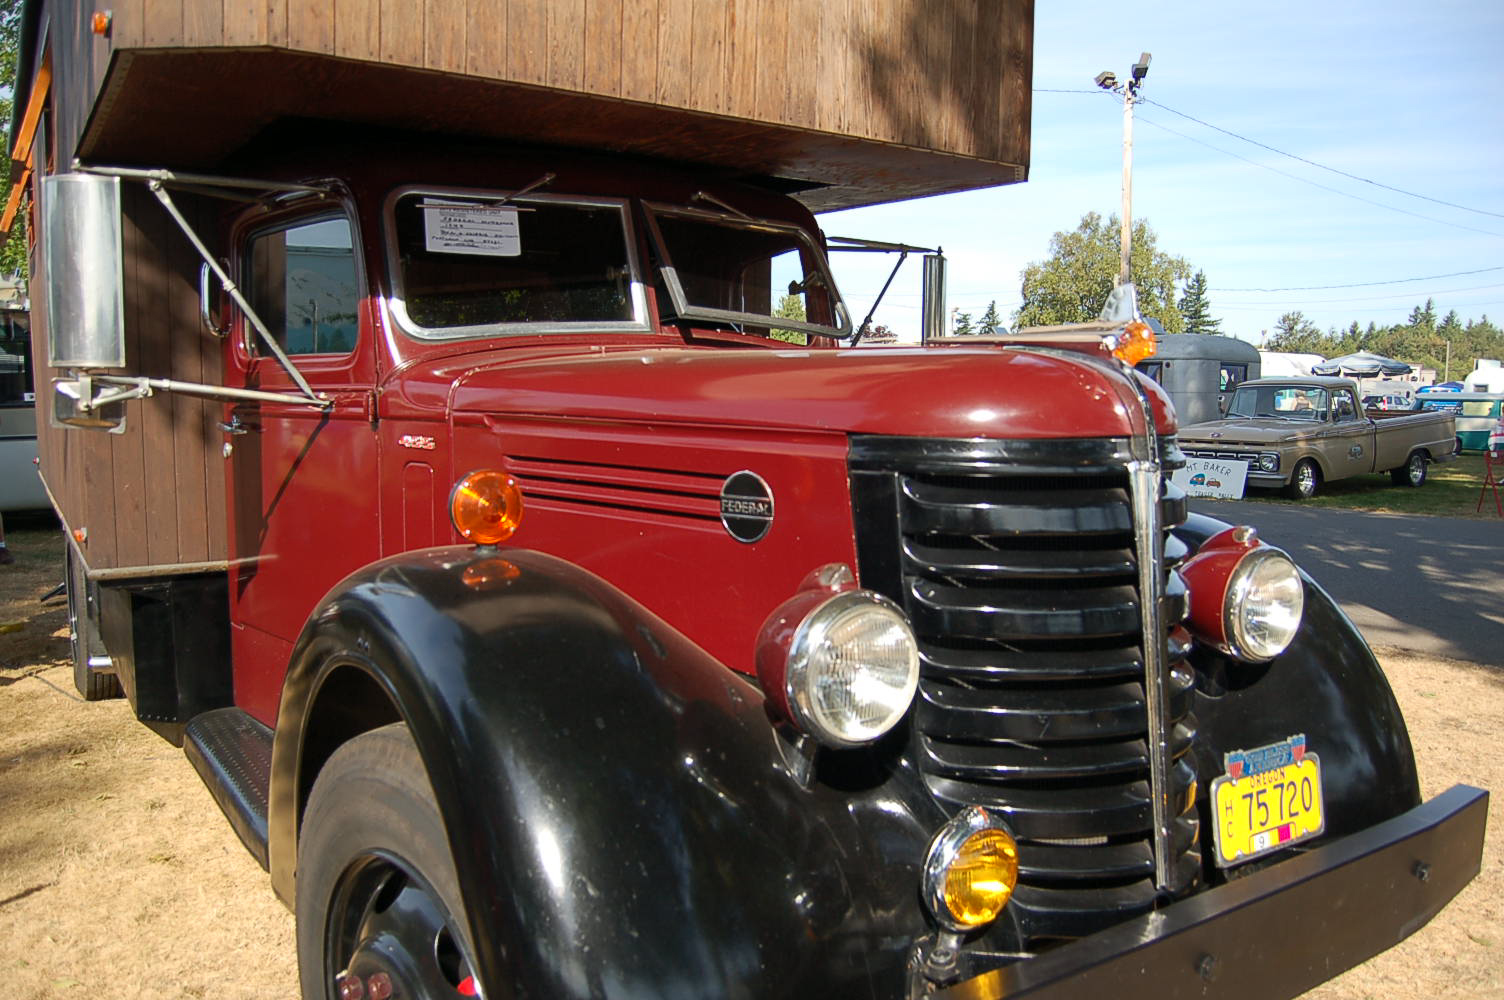 Awesome Vintage 1959 Federal Truck Based Camper Is A Beautiful And Useful Custom Trailer